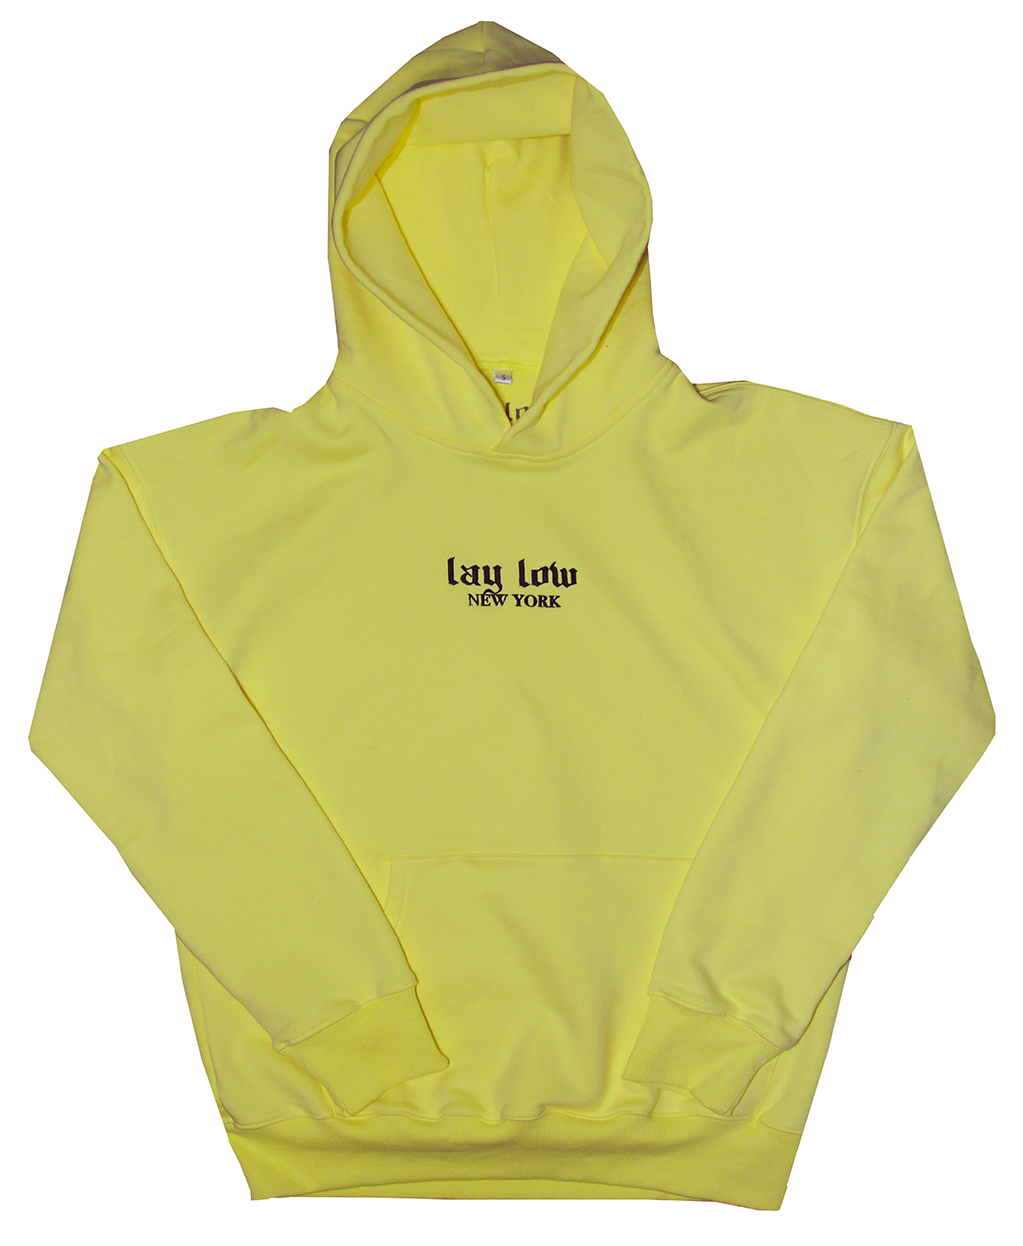 Yellow LLNY Hoodie - Lay Low Apparel